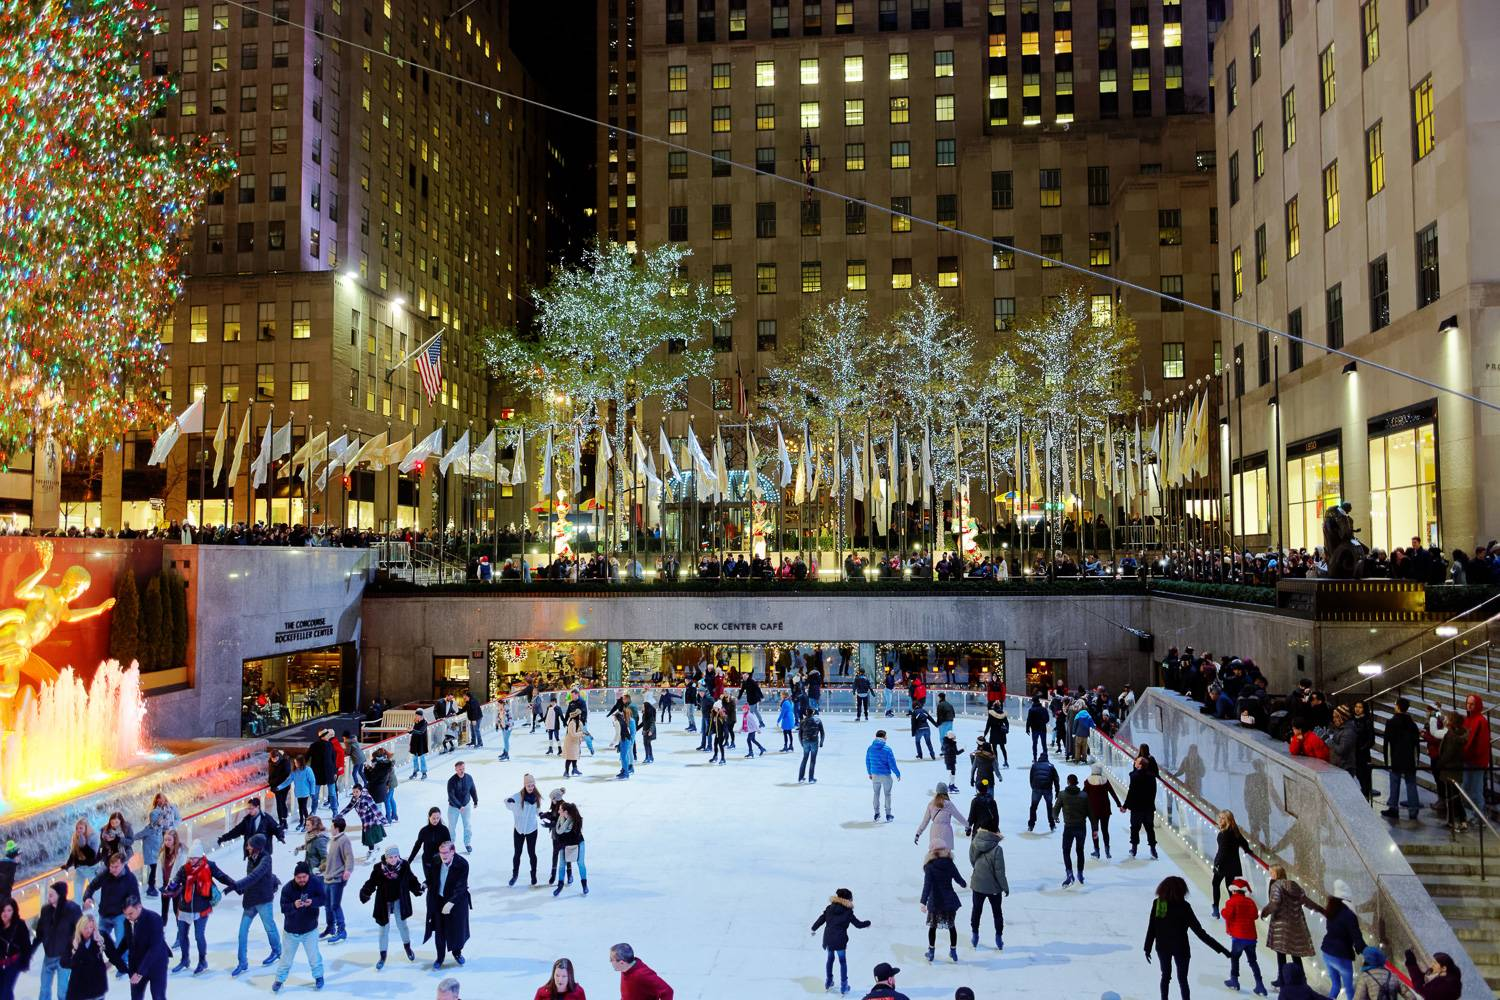 Image of people skating at night by the famous tree in Rockefeller Center